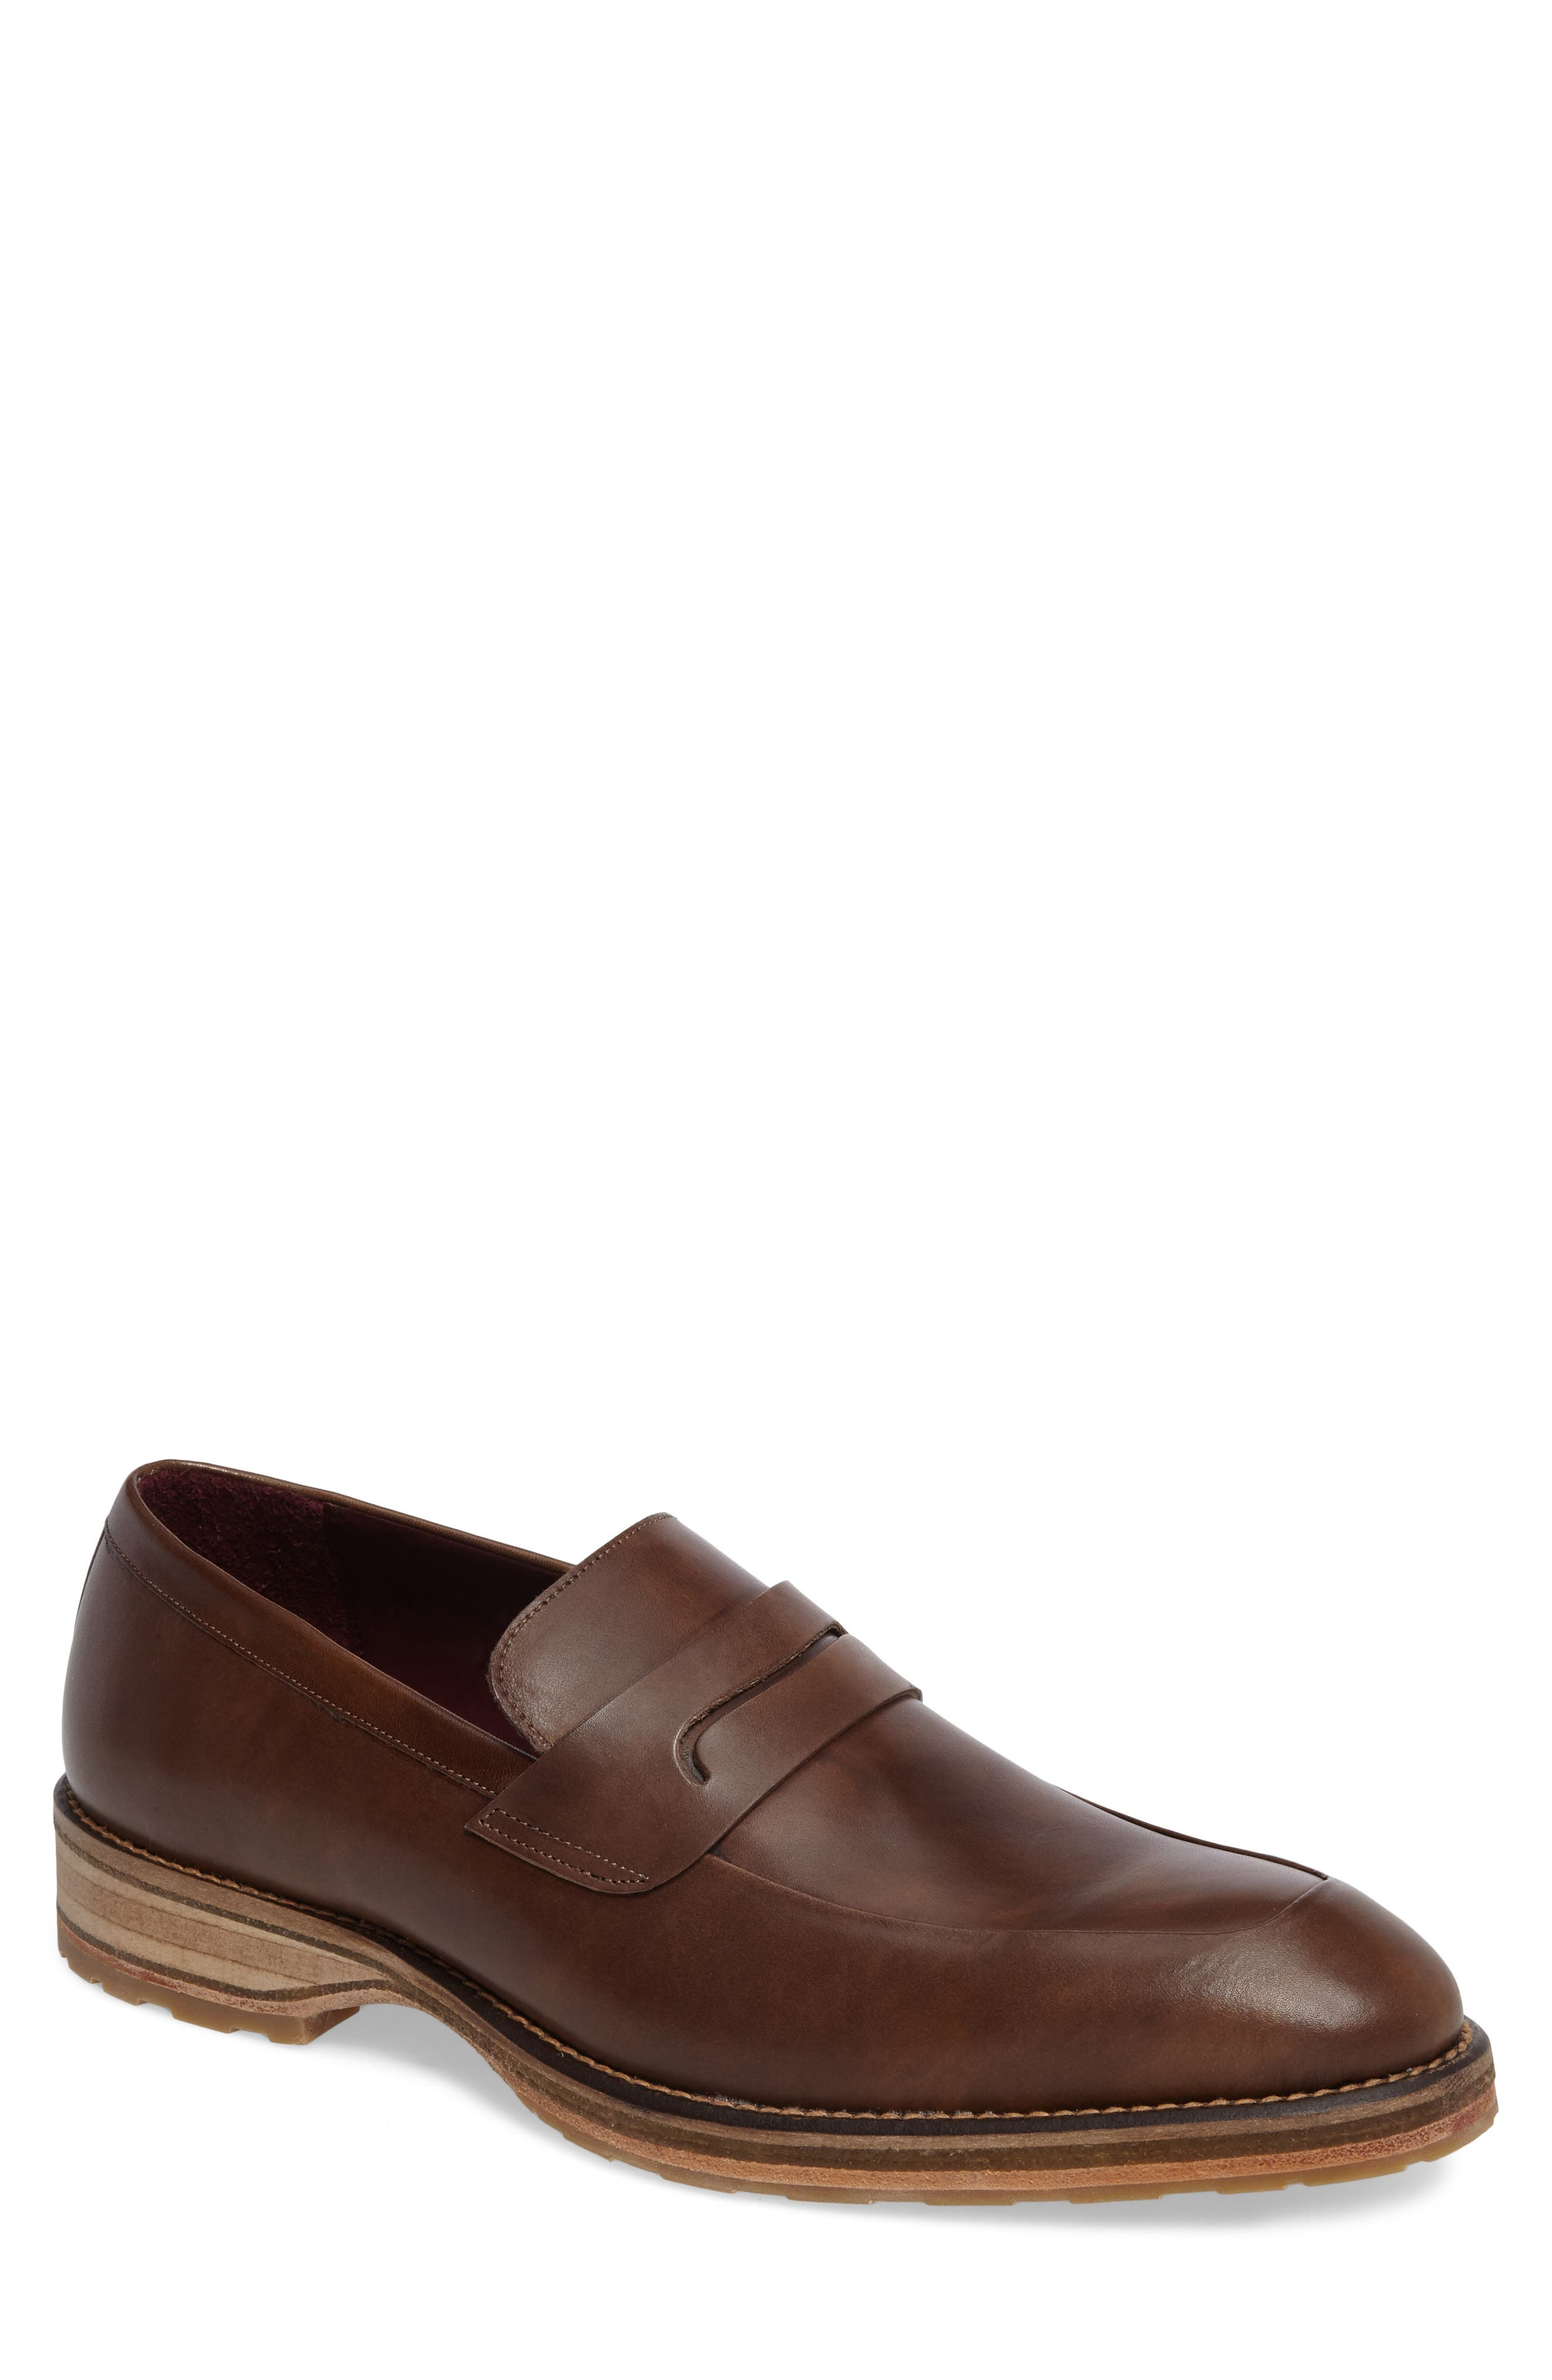 Cantonia Penny Loafer,                             Main thumbnail 1, color,